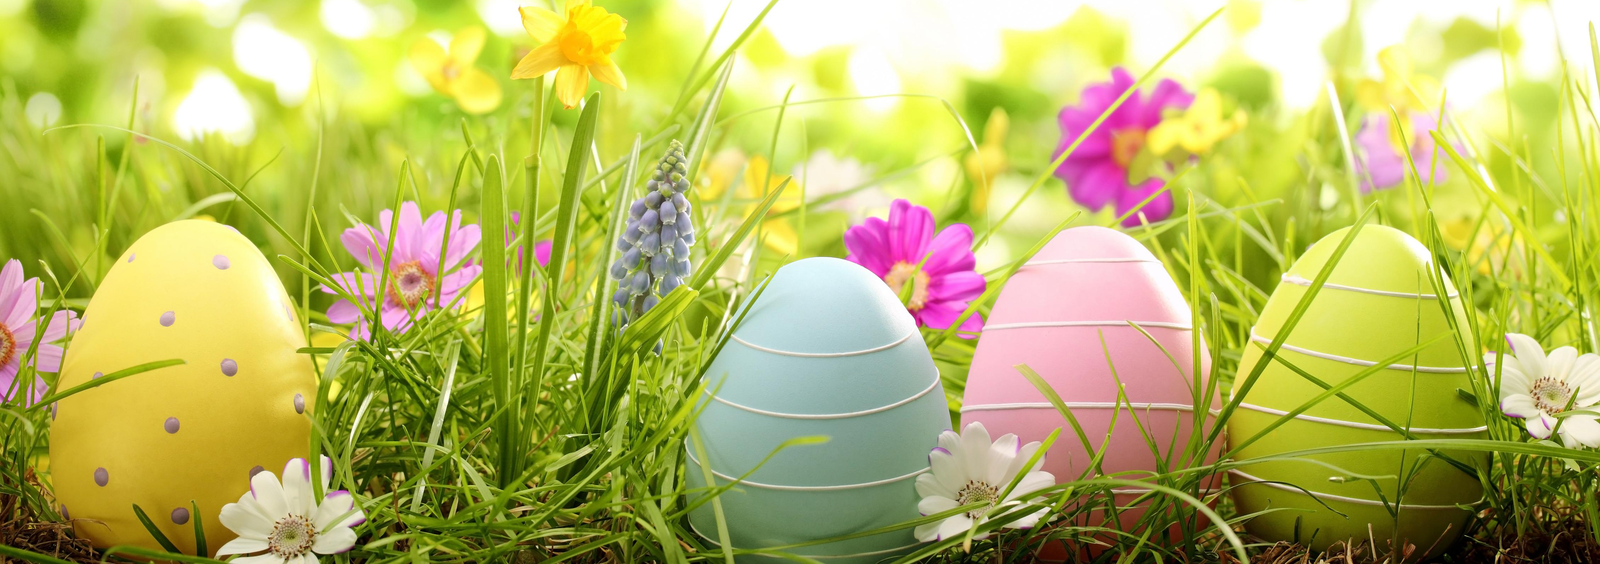 Easter holiday 2020